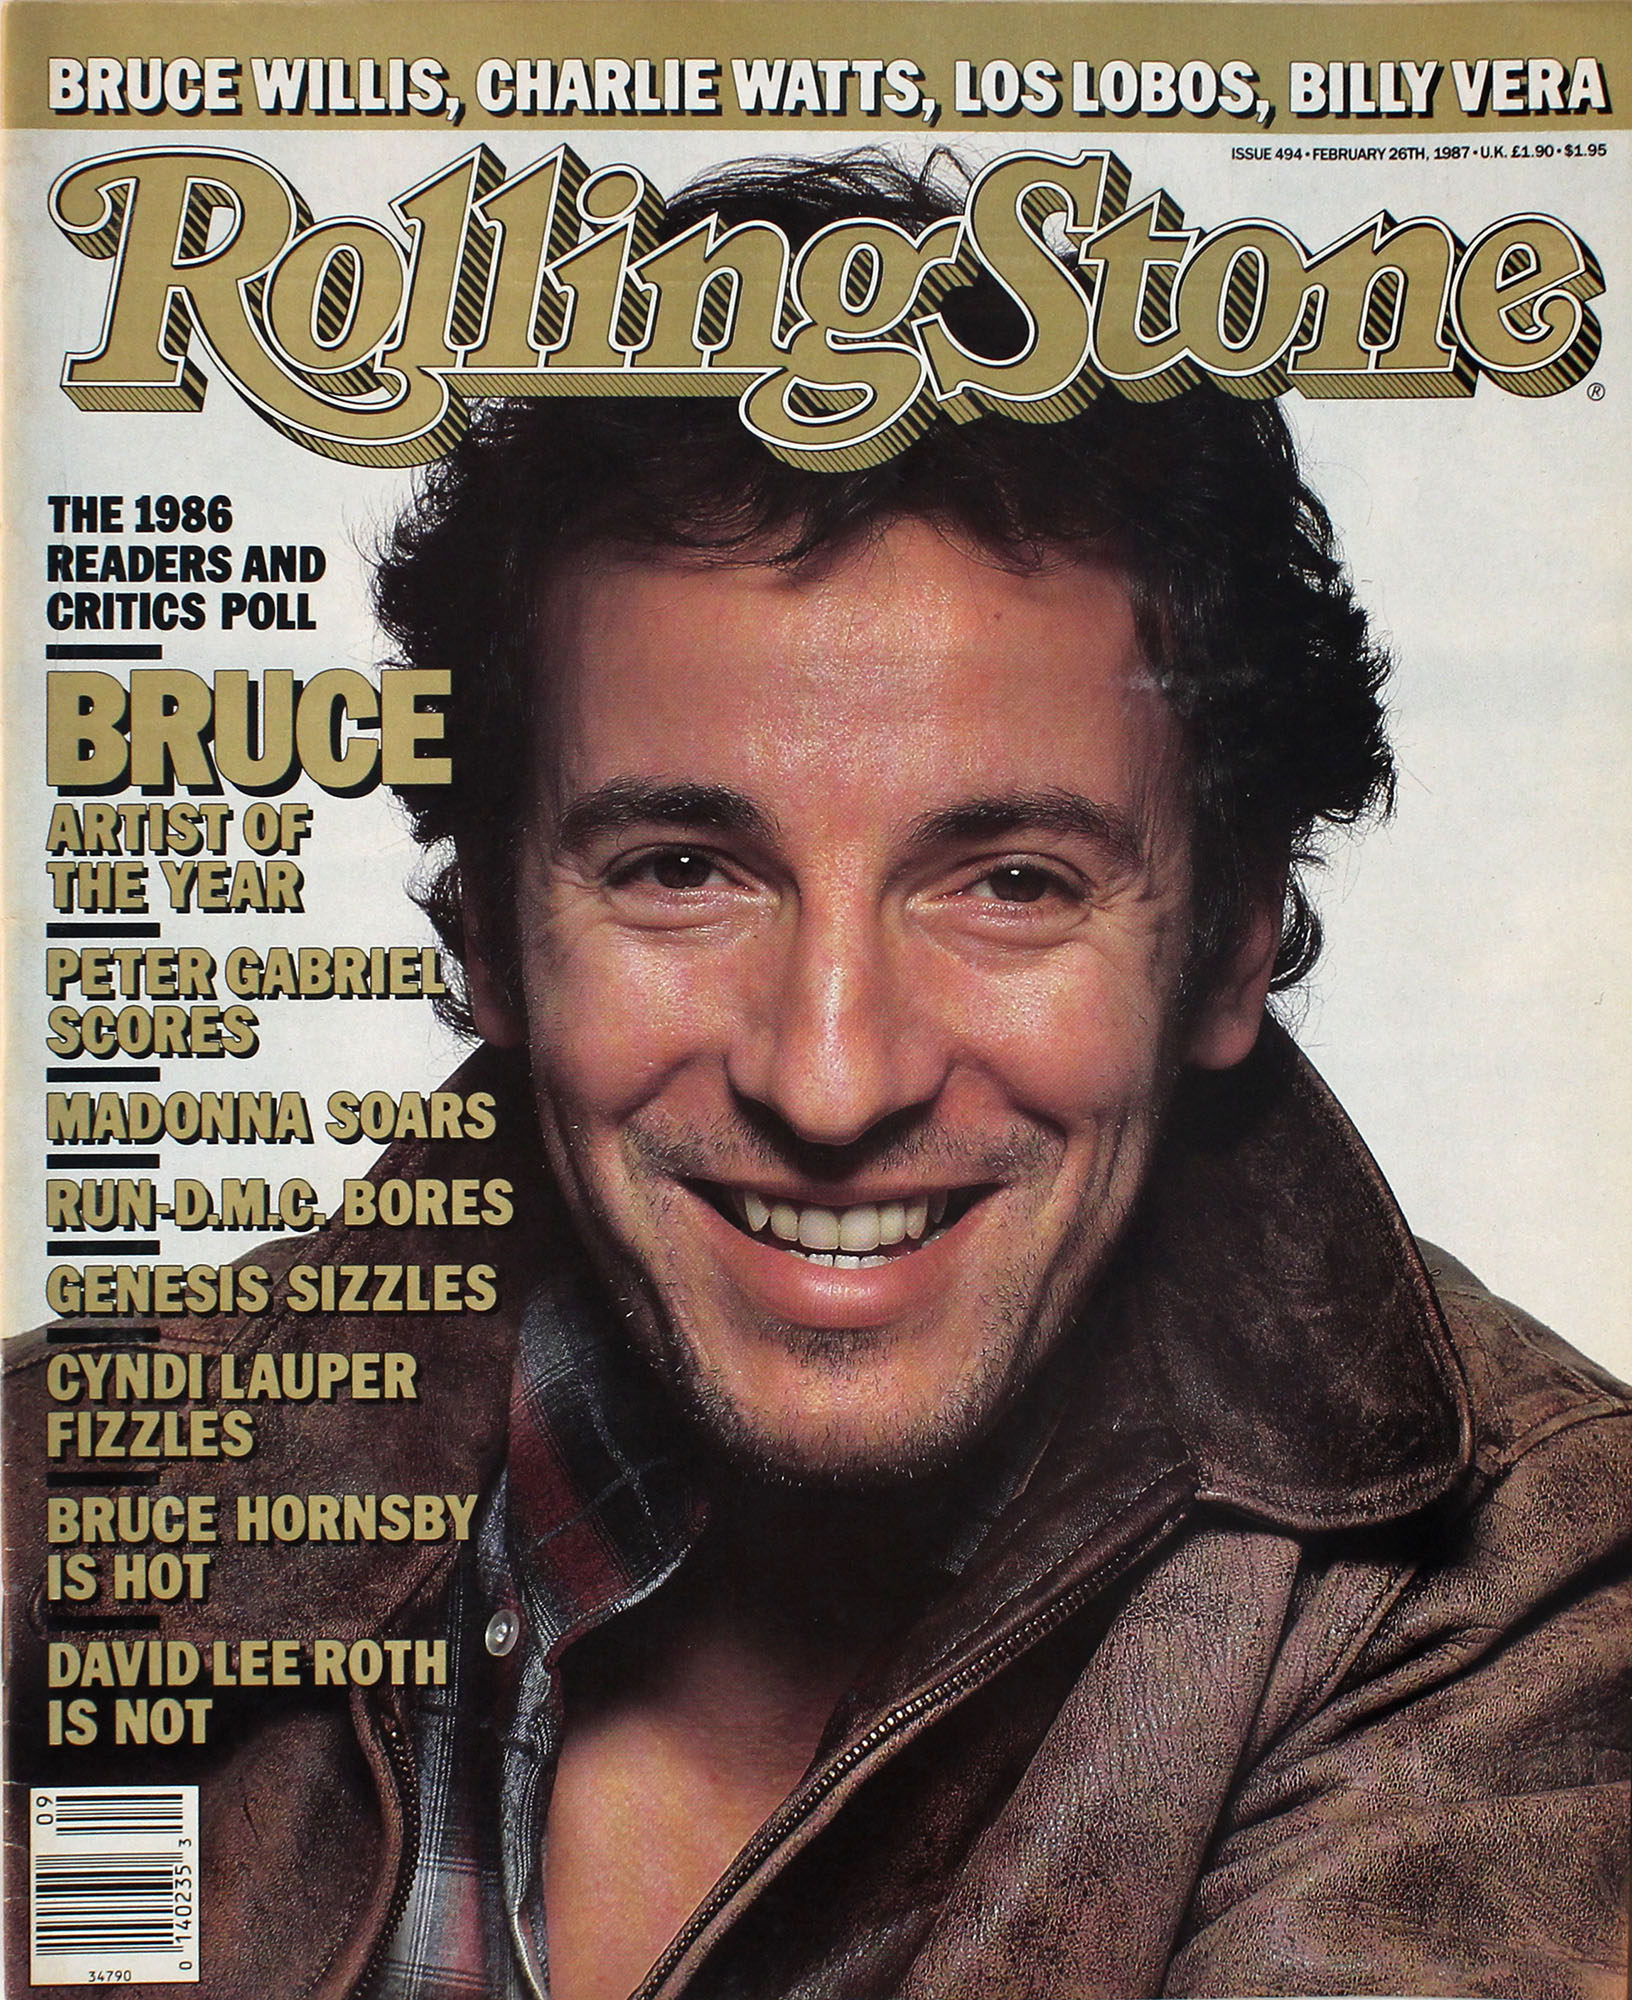 Rolling Stone Issue 494